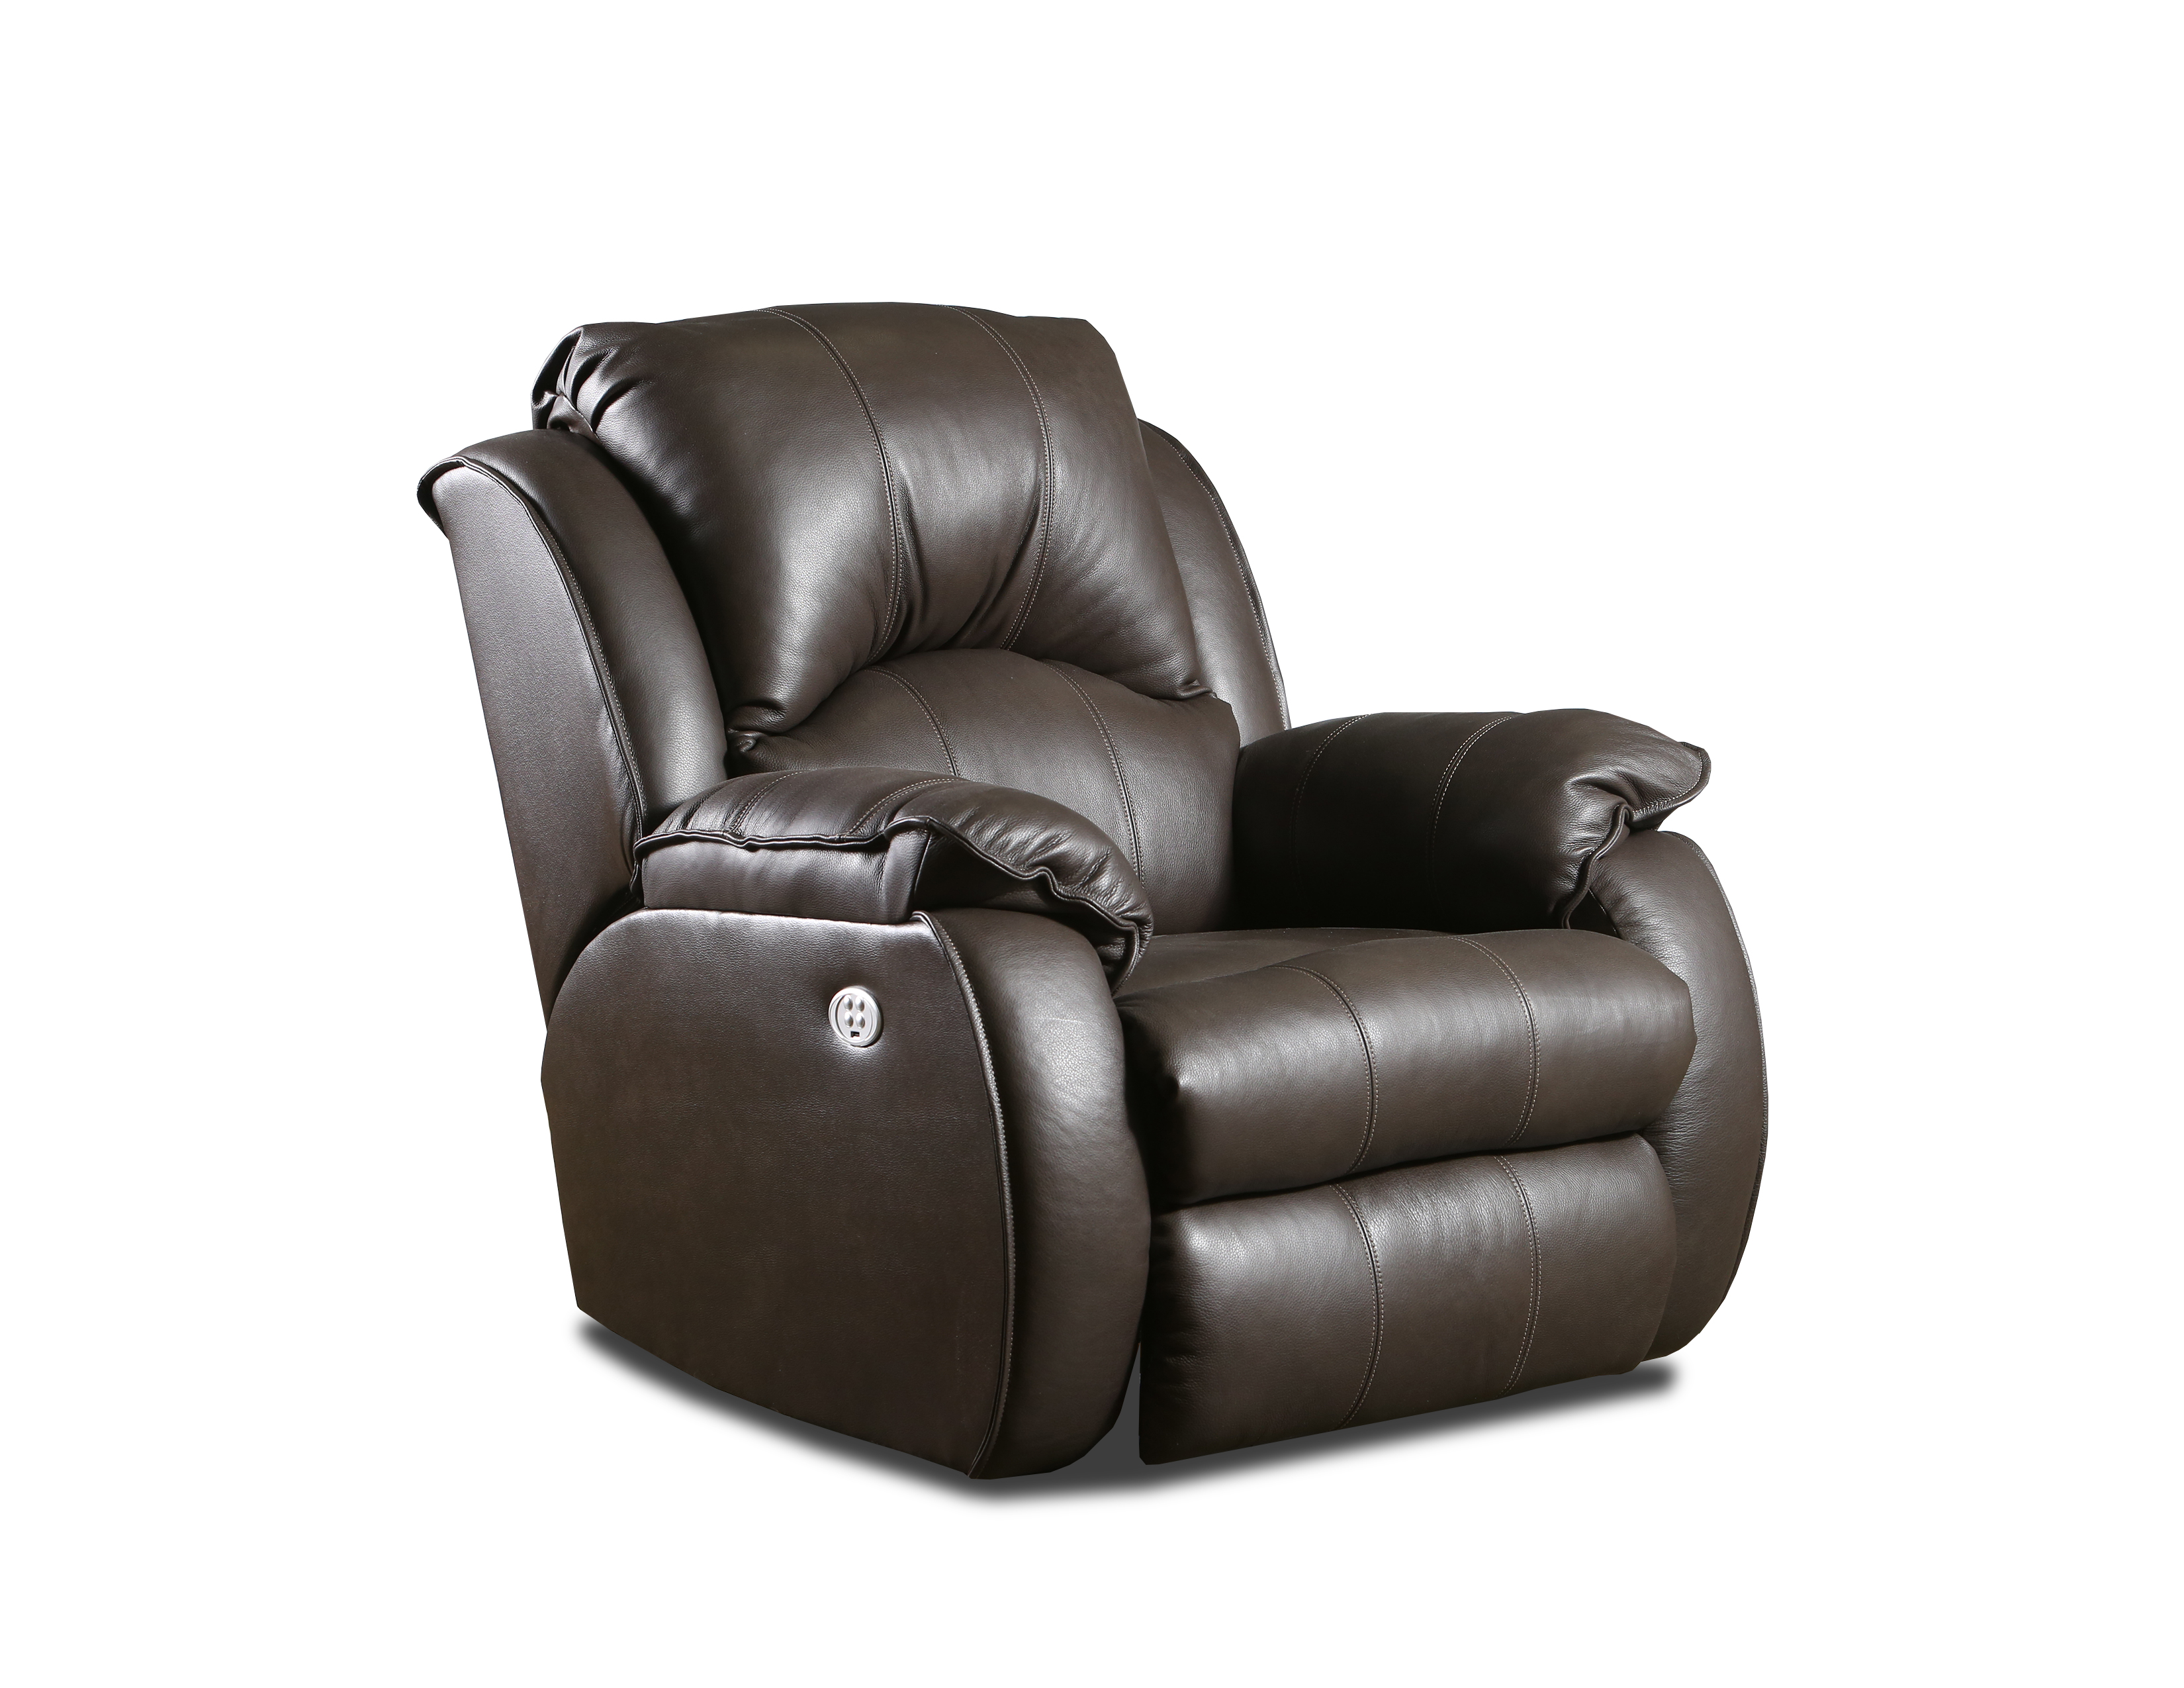 1175 Cagney Recliner Image